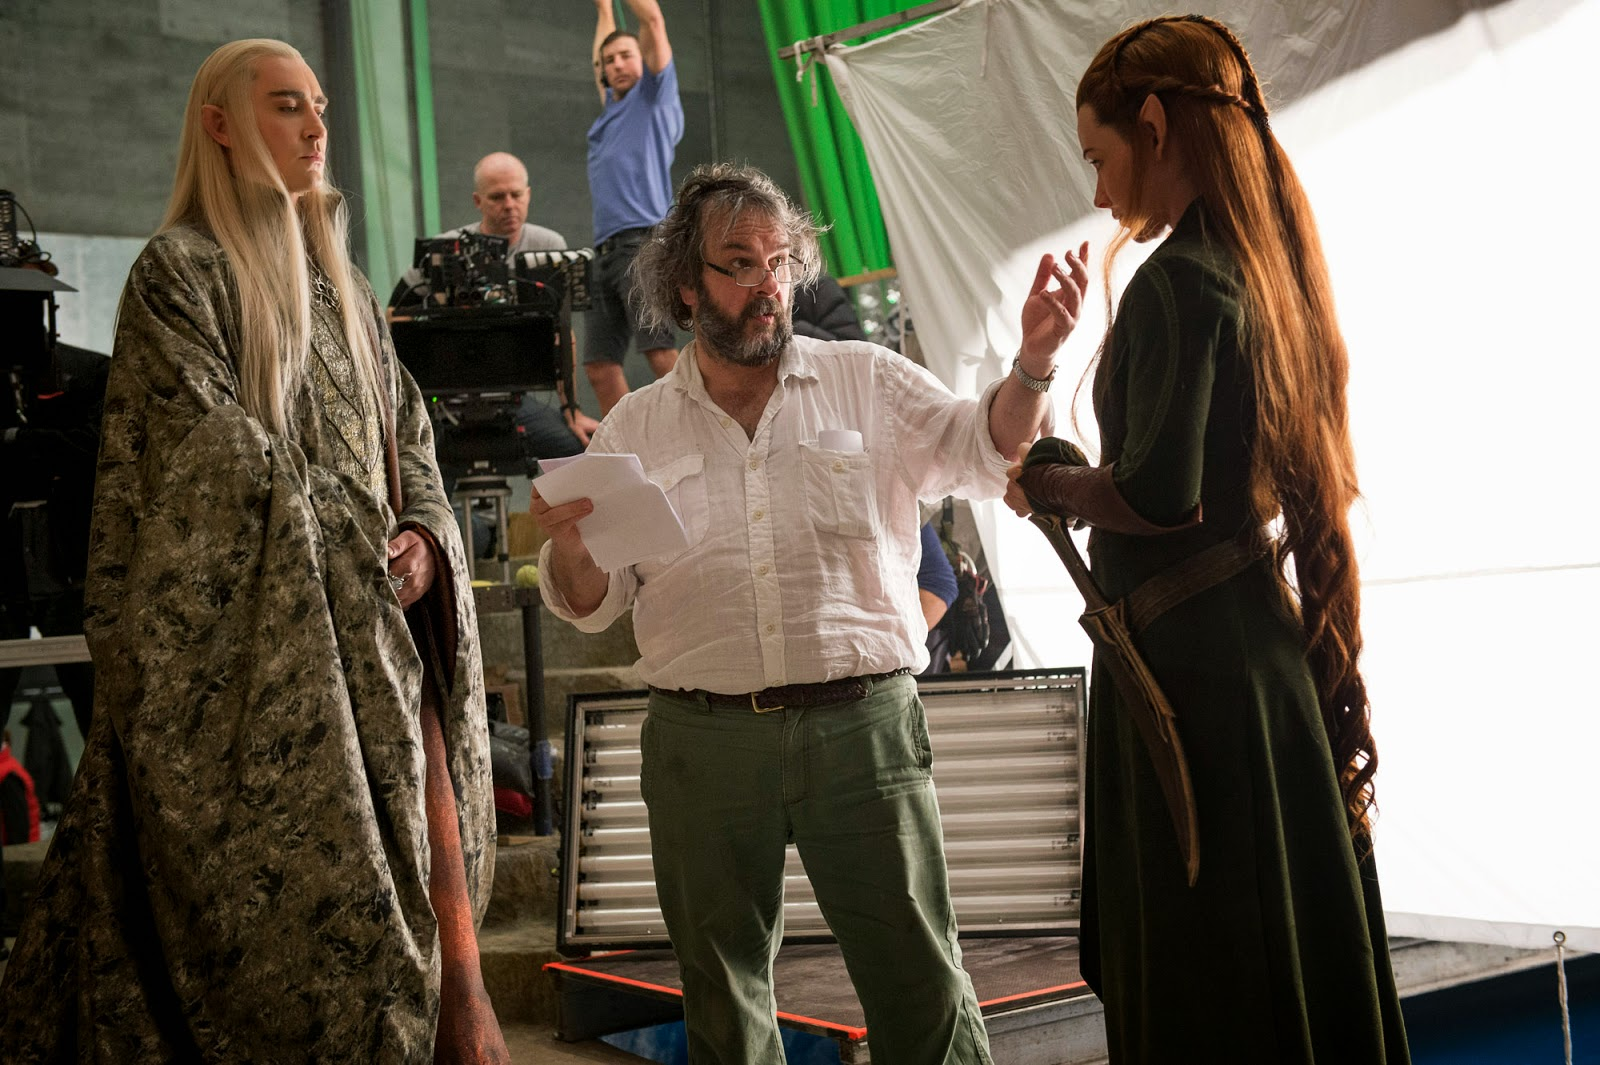 The Hobbit: The Desolation of Smaug behind the scenes